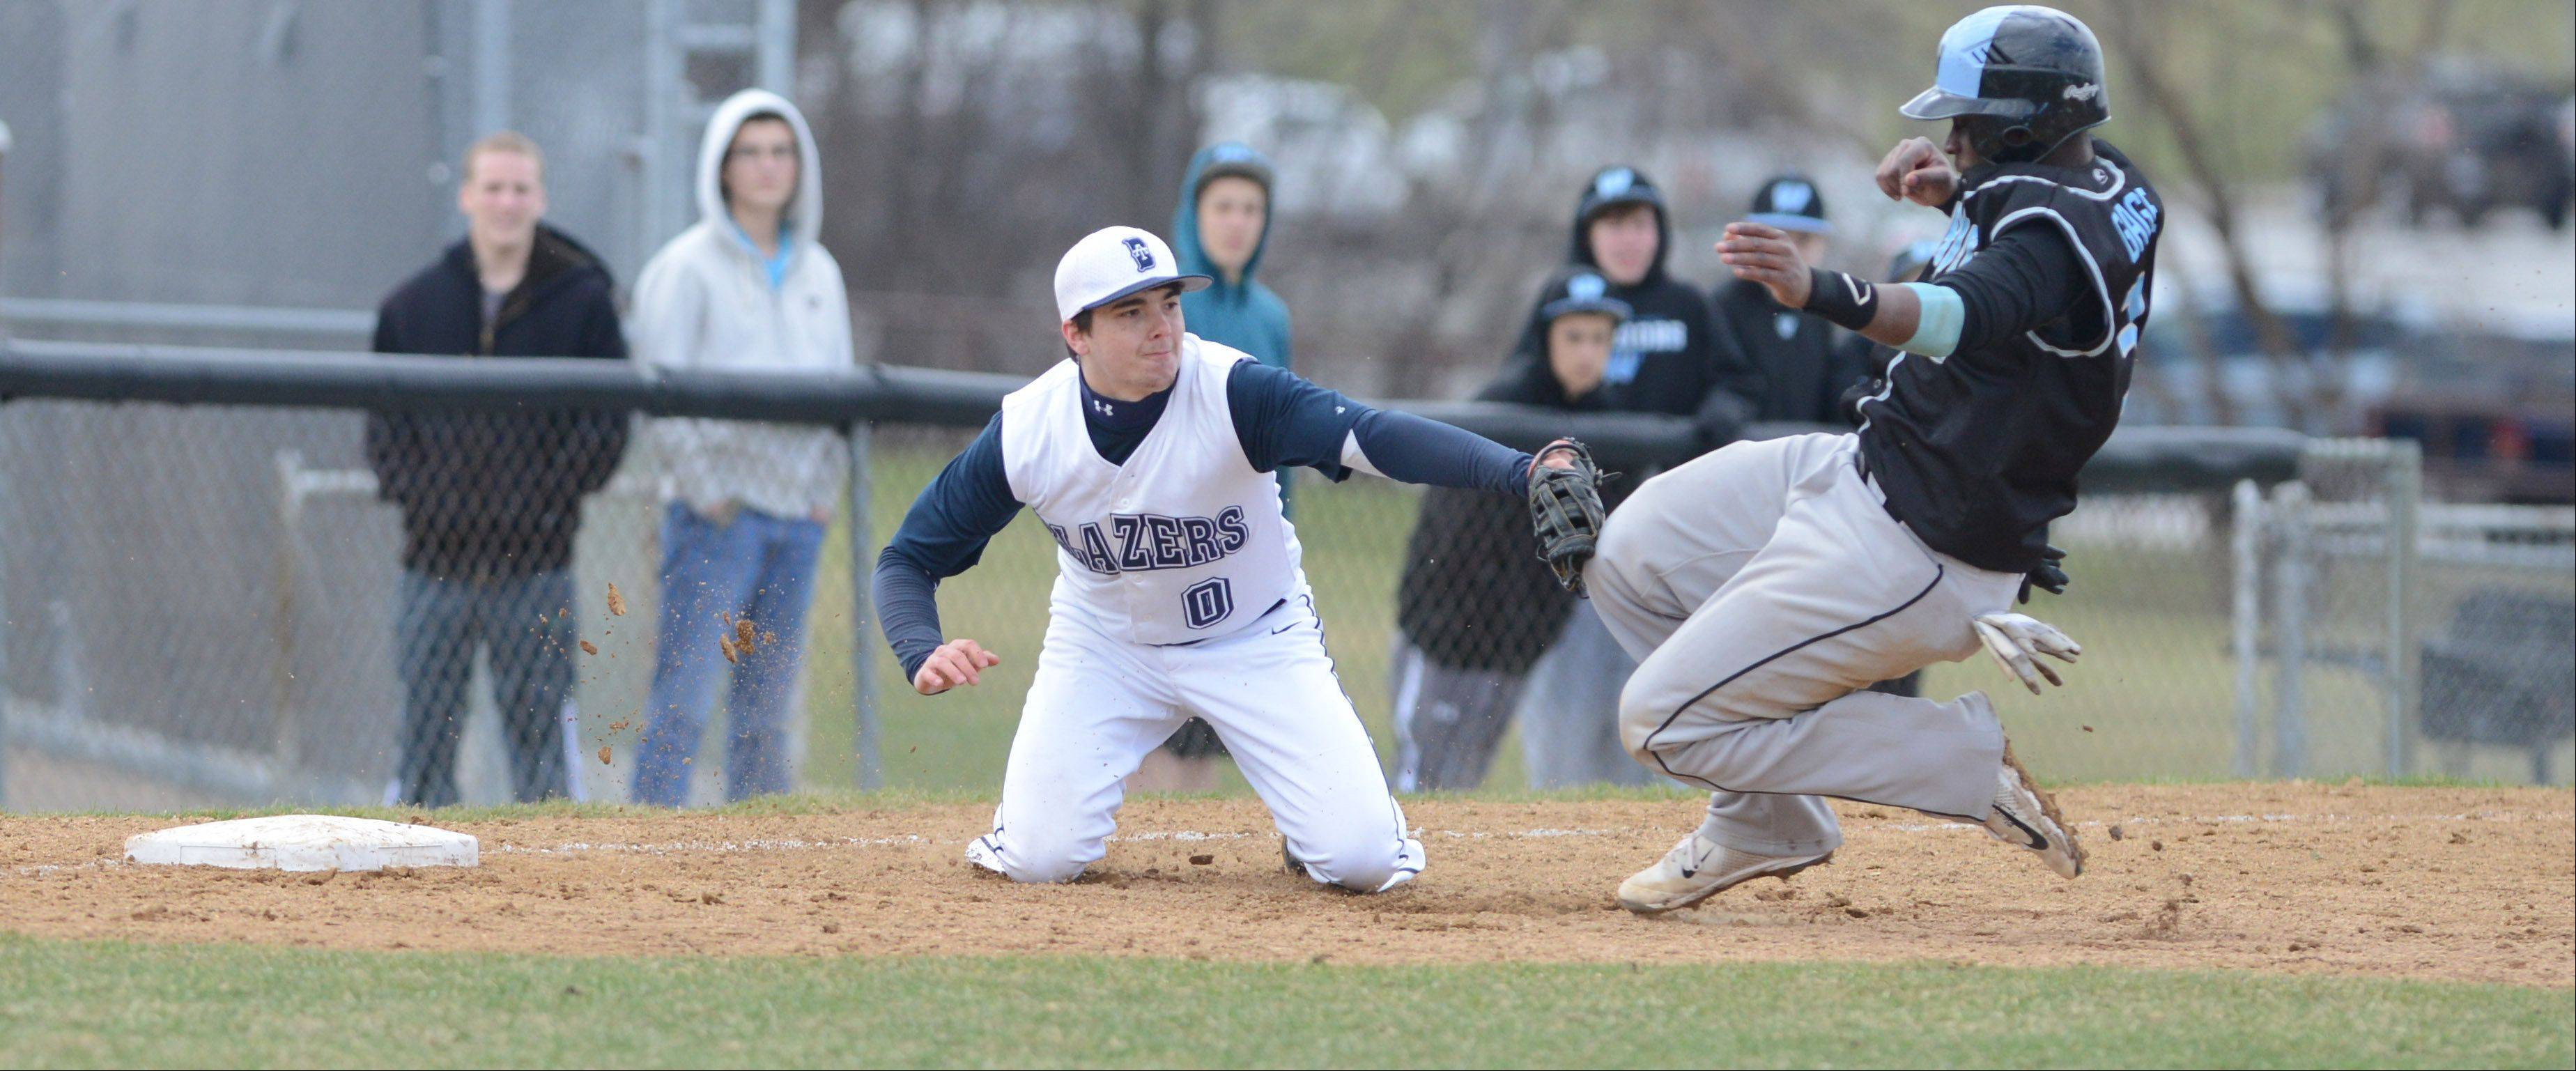 Brad Schonder of Addison Trail just misses the tag on Gabe Gage of Willowbrook at third base on Saturday in Addison.